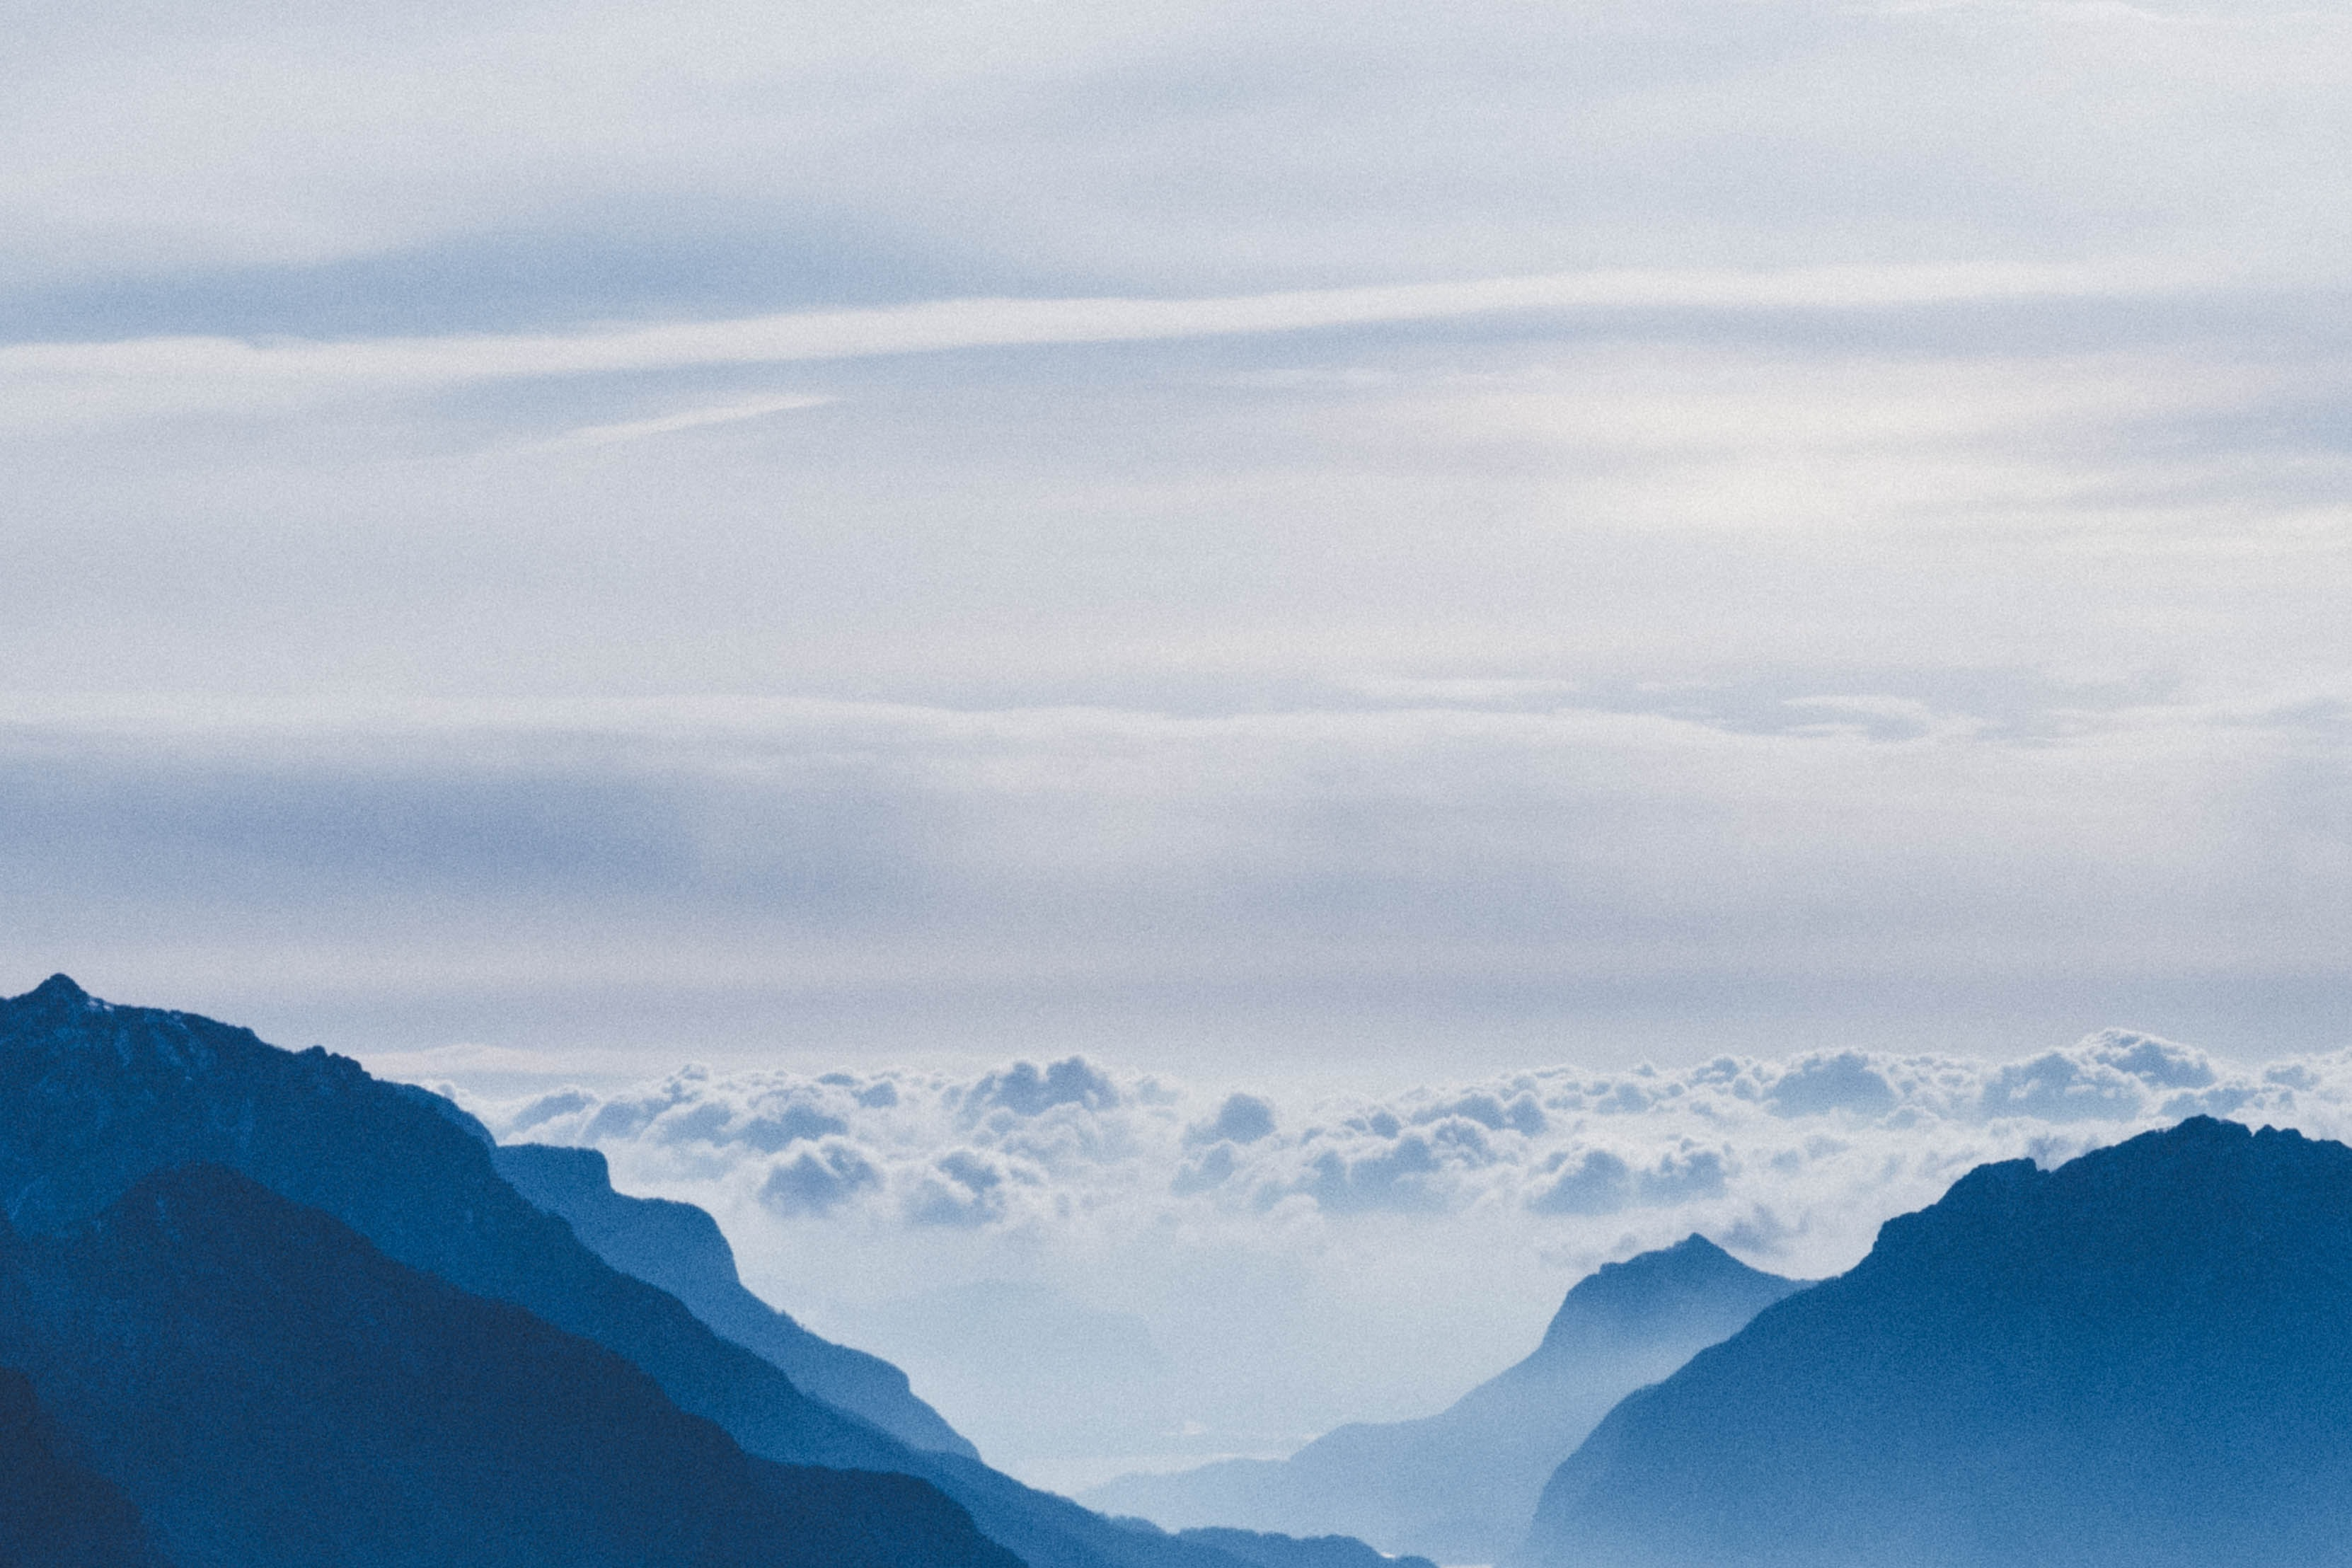 silhouette of mountain with clouds during daytime